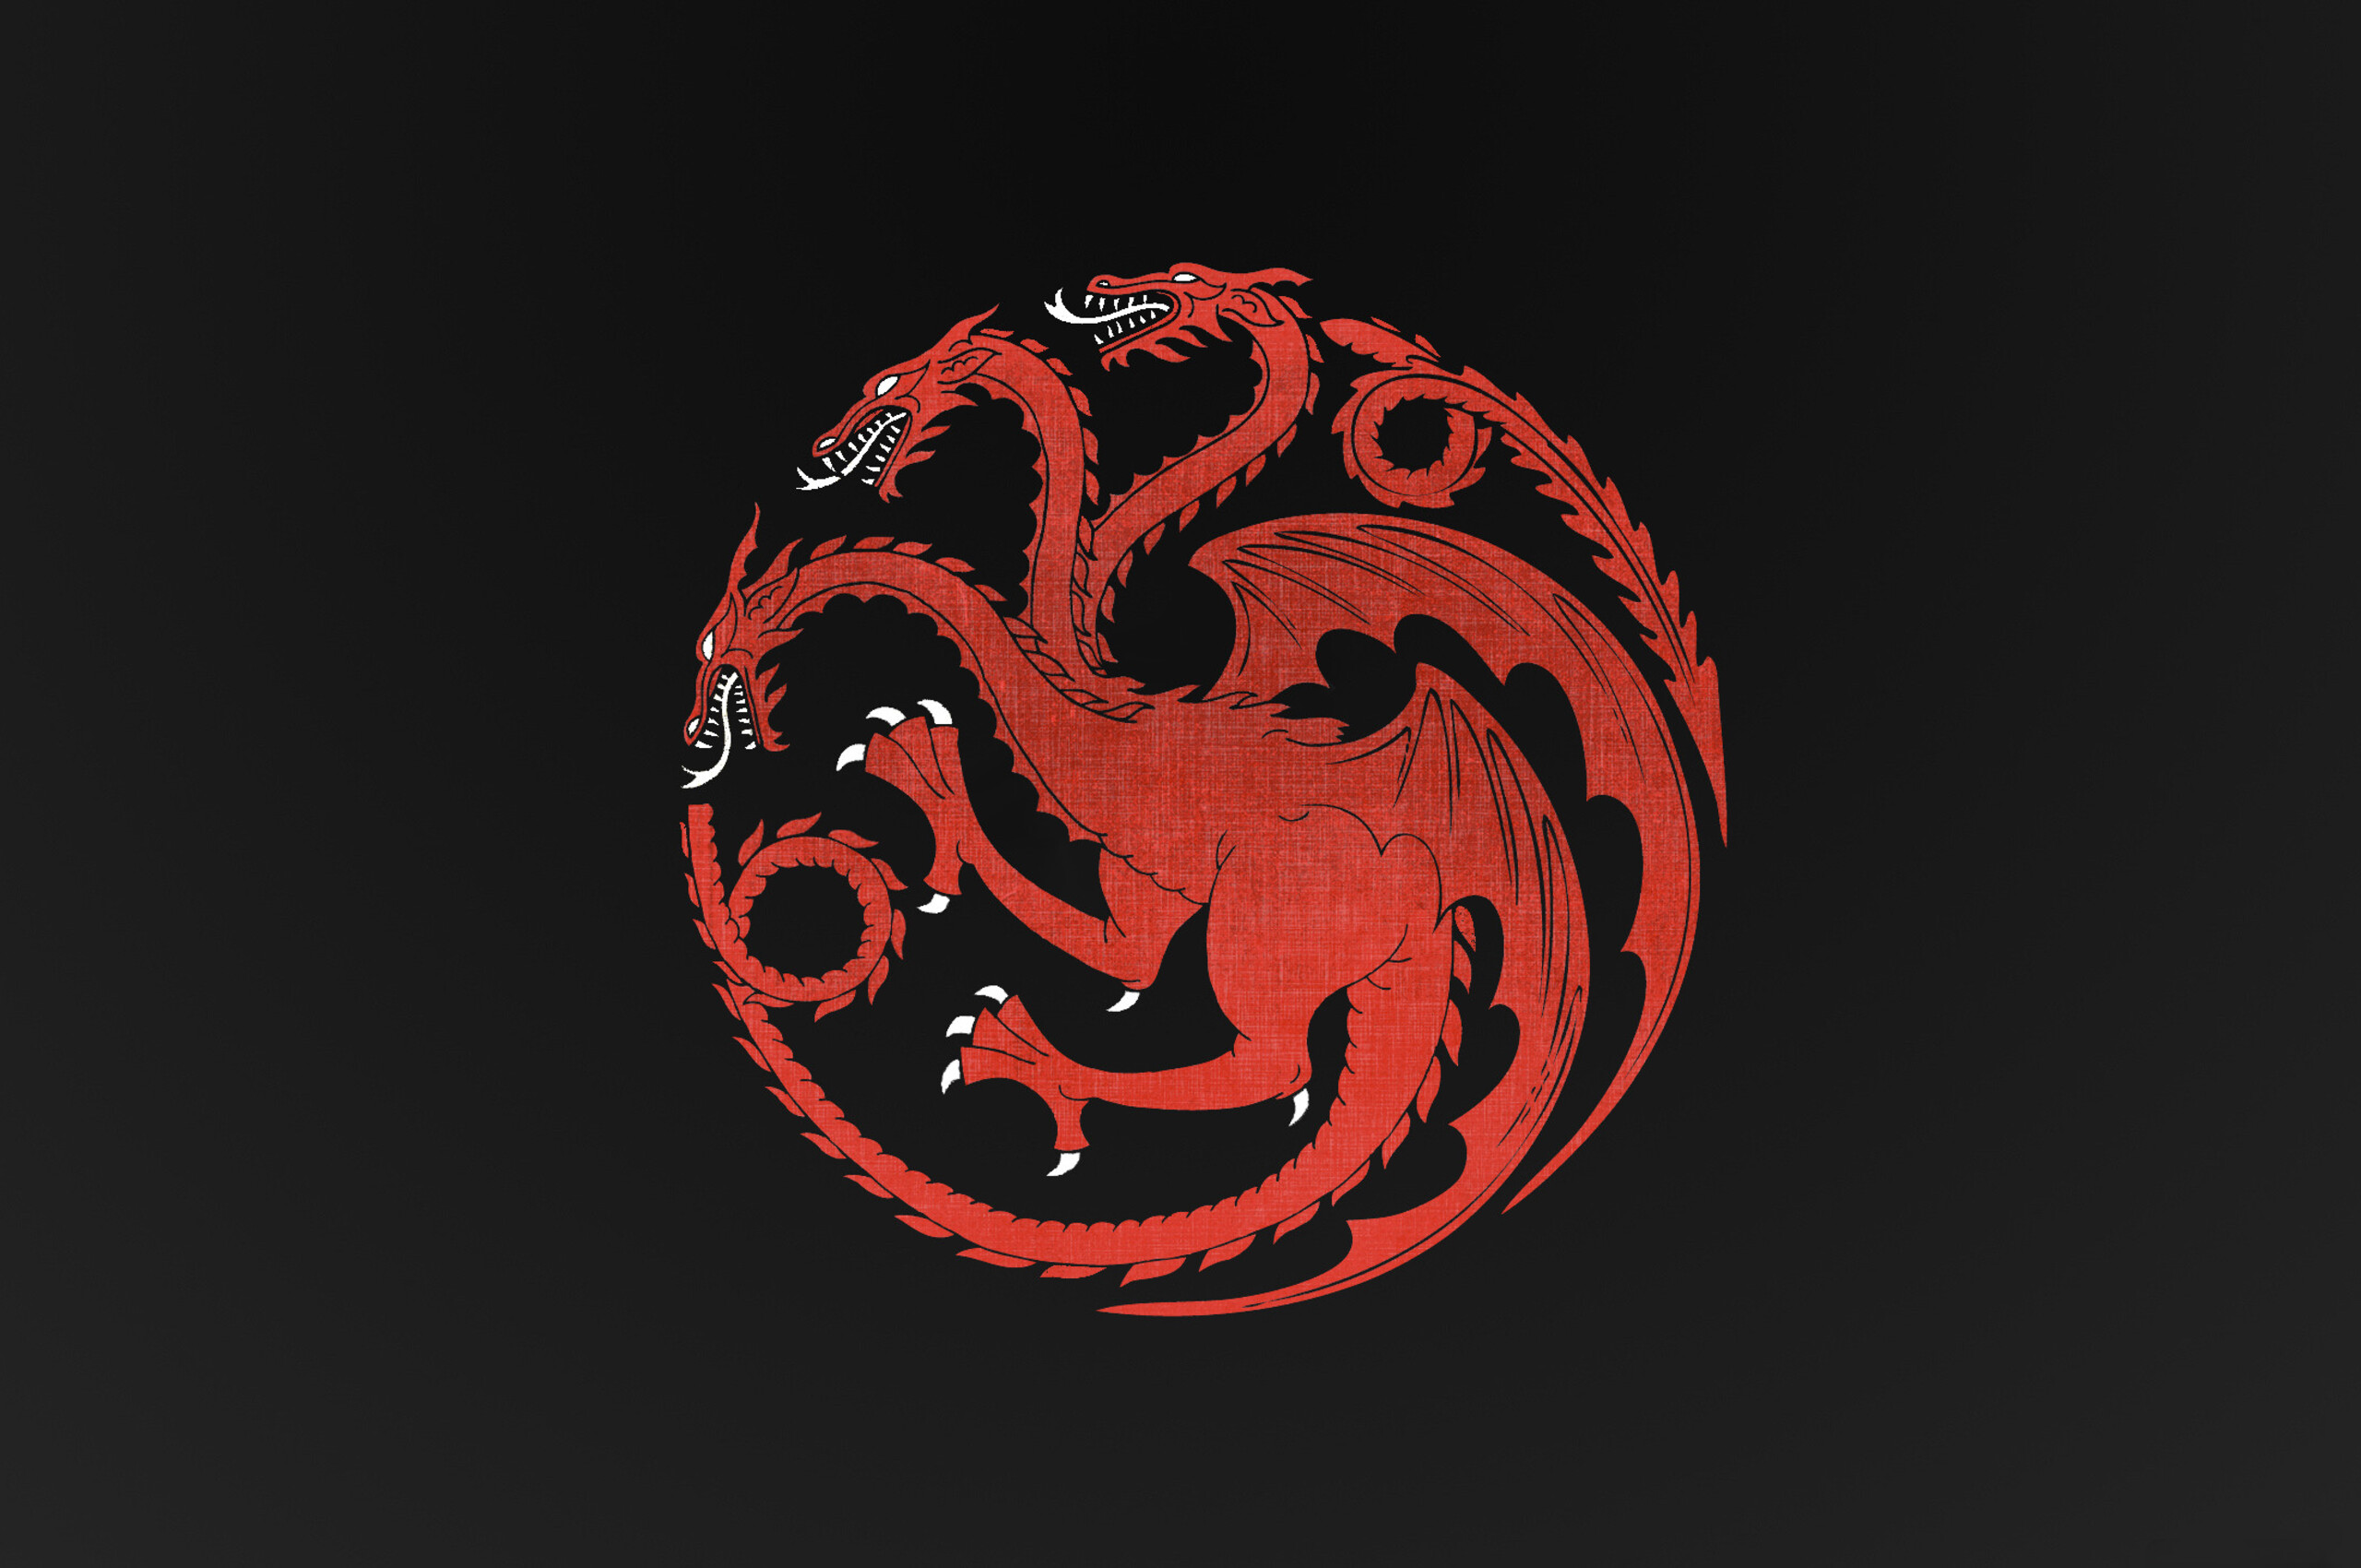 Game Of Thrones Minimalist Wallpaper: 2560x1700 House Targaryen Dragon Game Of Thrones Dragon